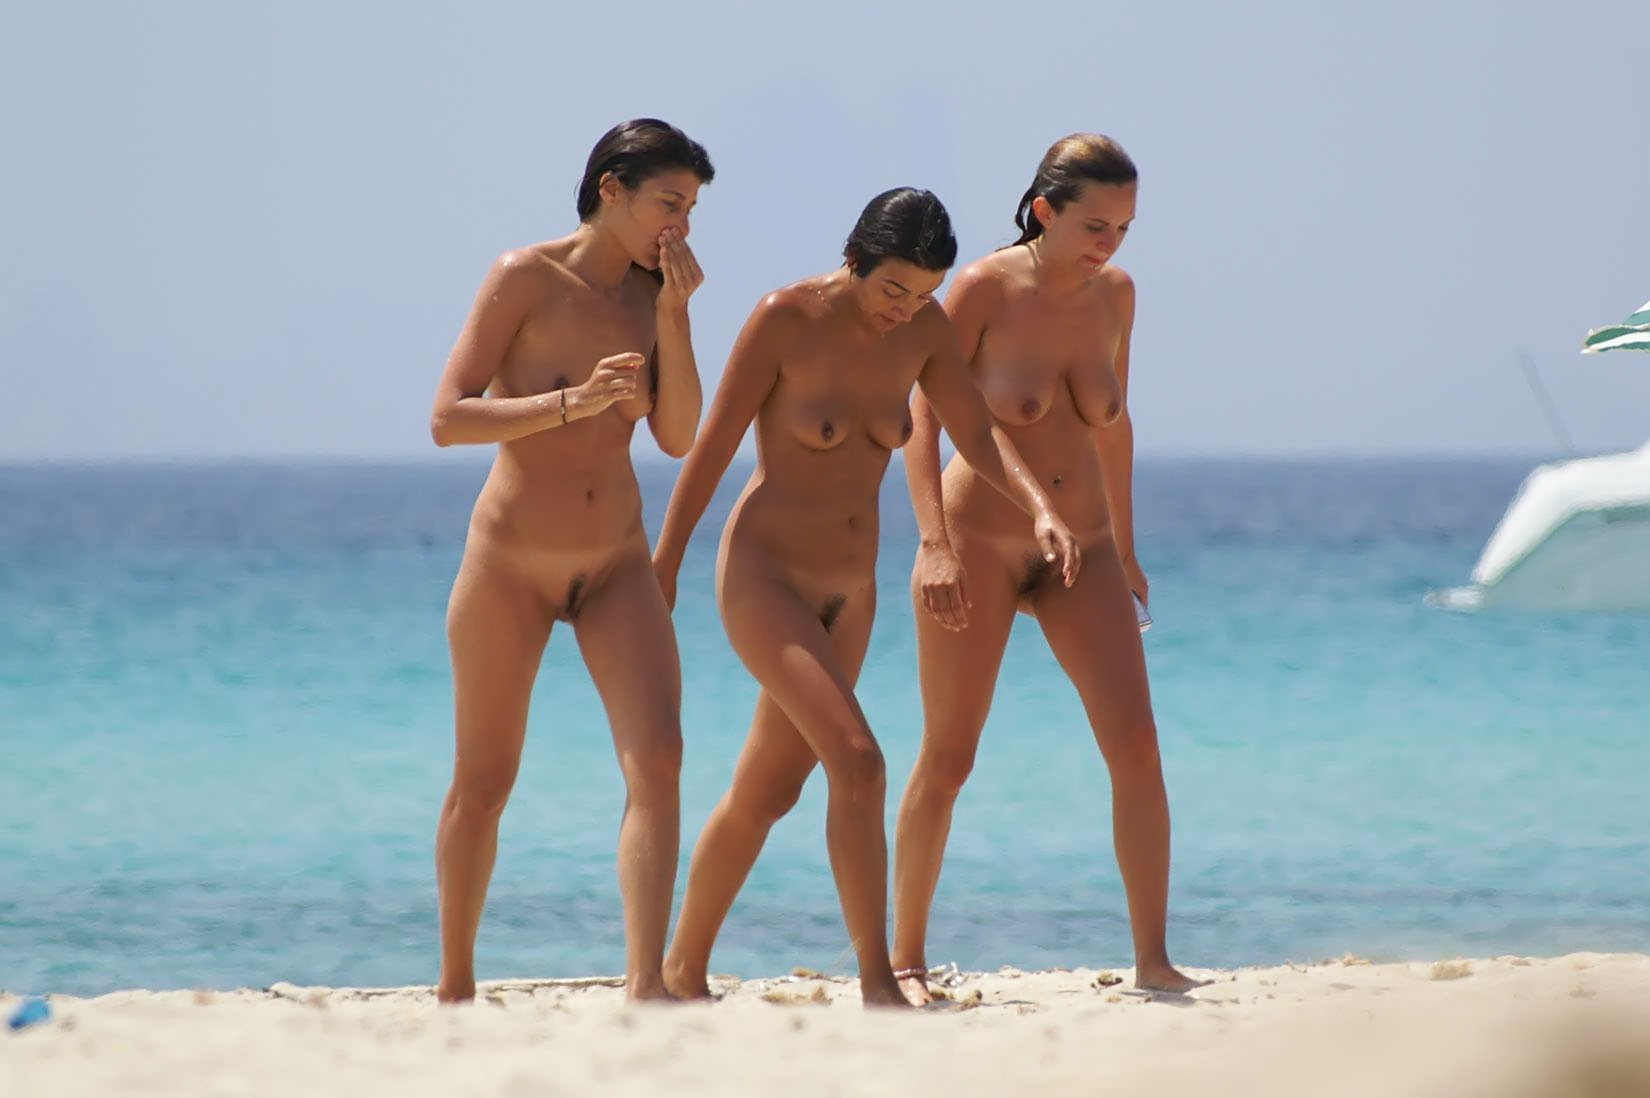 Three hot babes showing their nude bodies on the beach